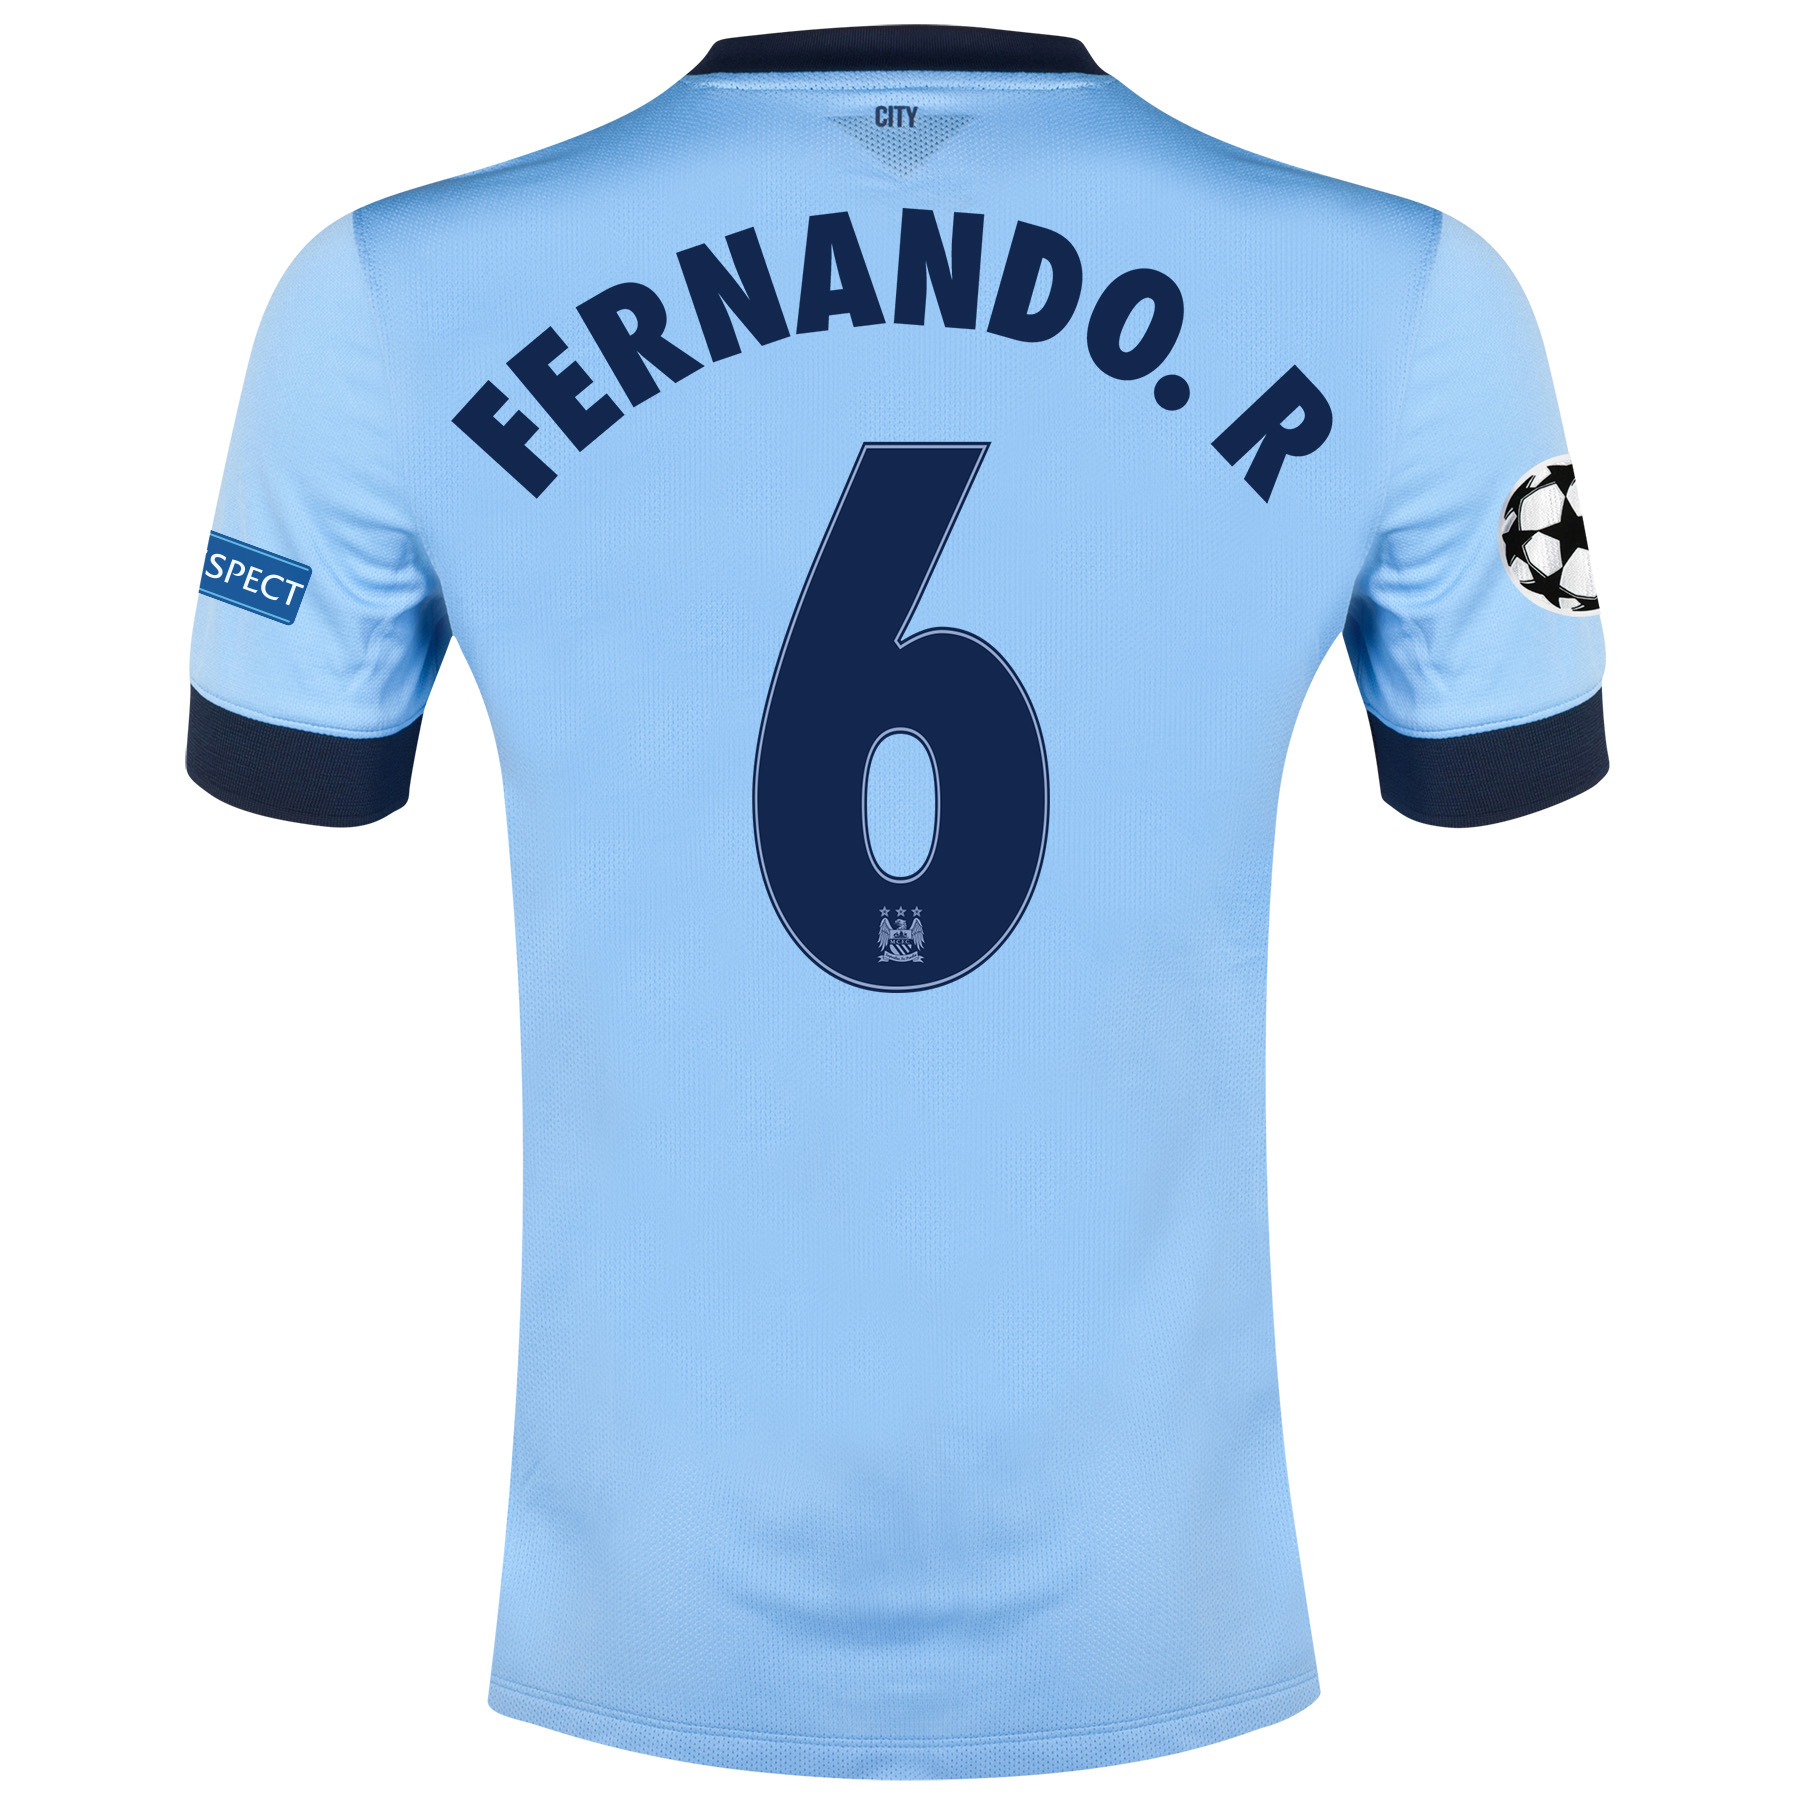 Manchester City UEFA Champions League Home Shirt 2014/15 Sky Blue with Fernando. R 6 printing